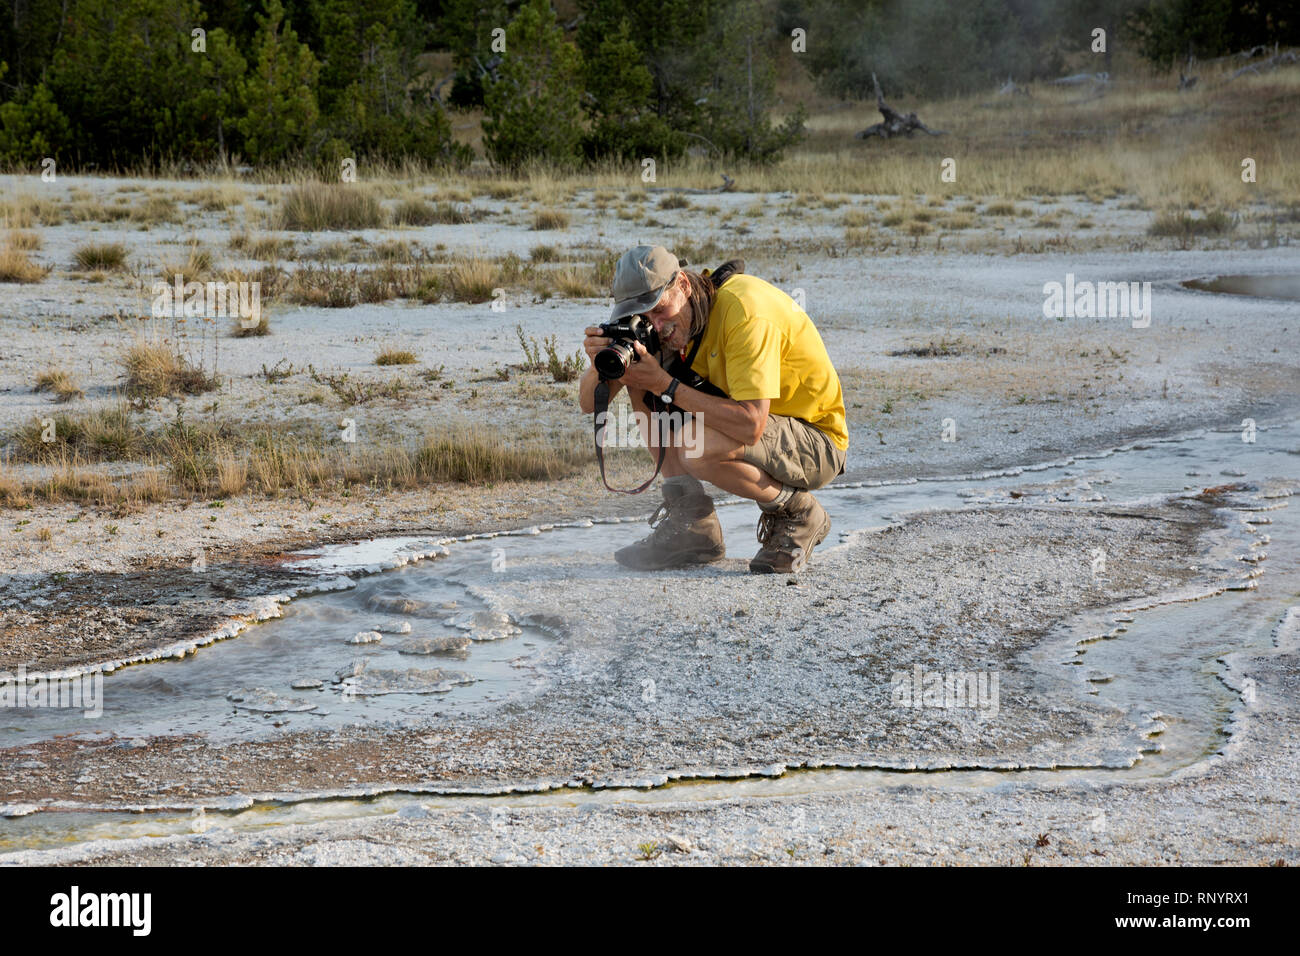 WY03826-00...WYOMING - Tom Kirkendall photographing the patterns created by the bulbous sinter along a runoff creek from a hot spring at the Rustic Gr - Stock Image